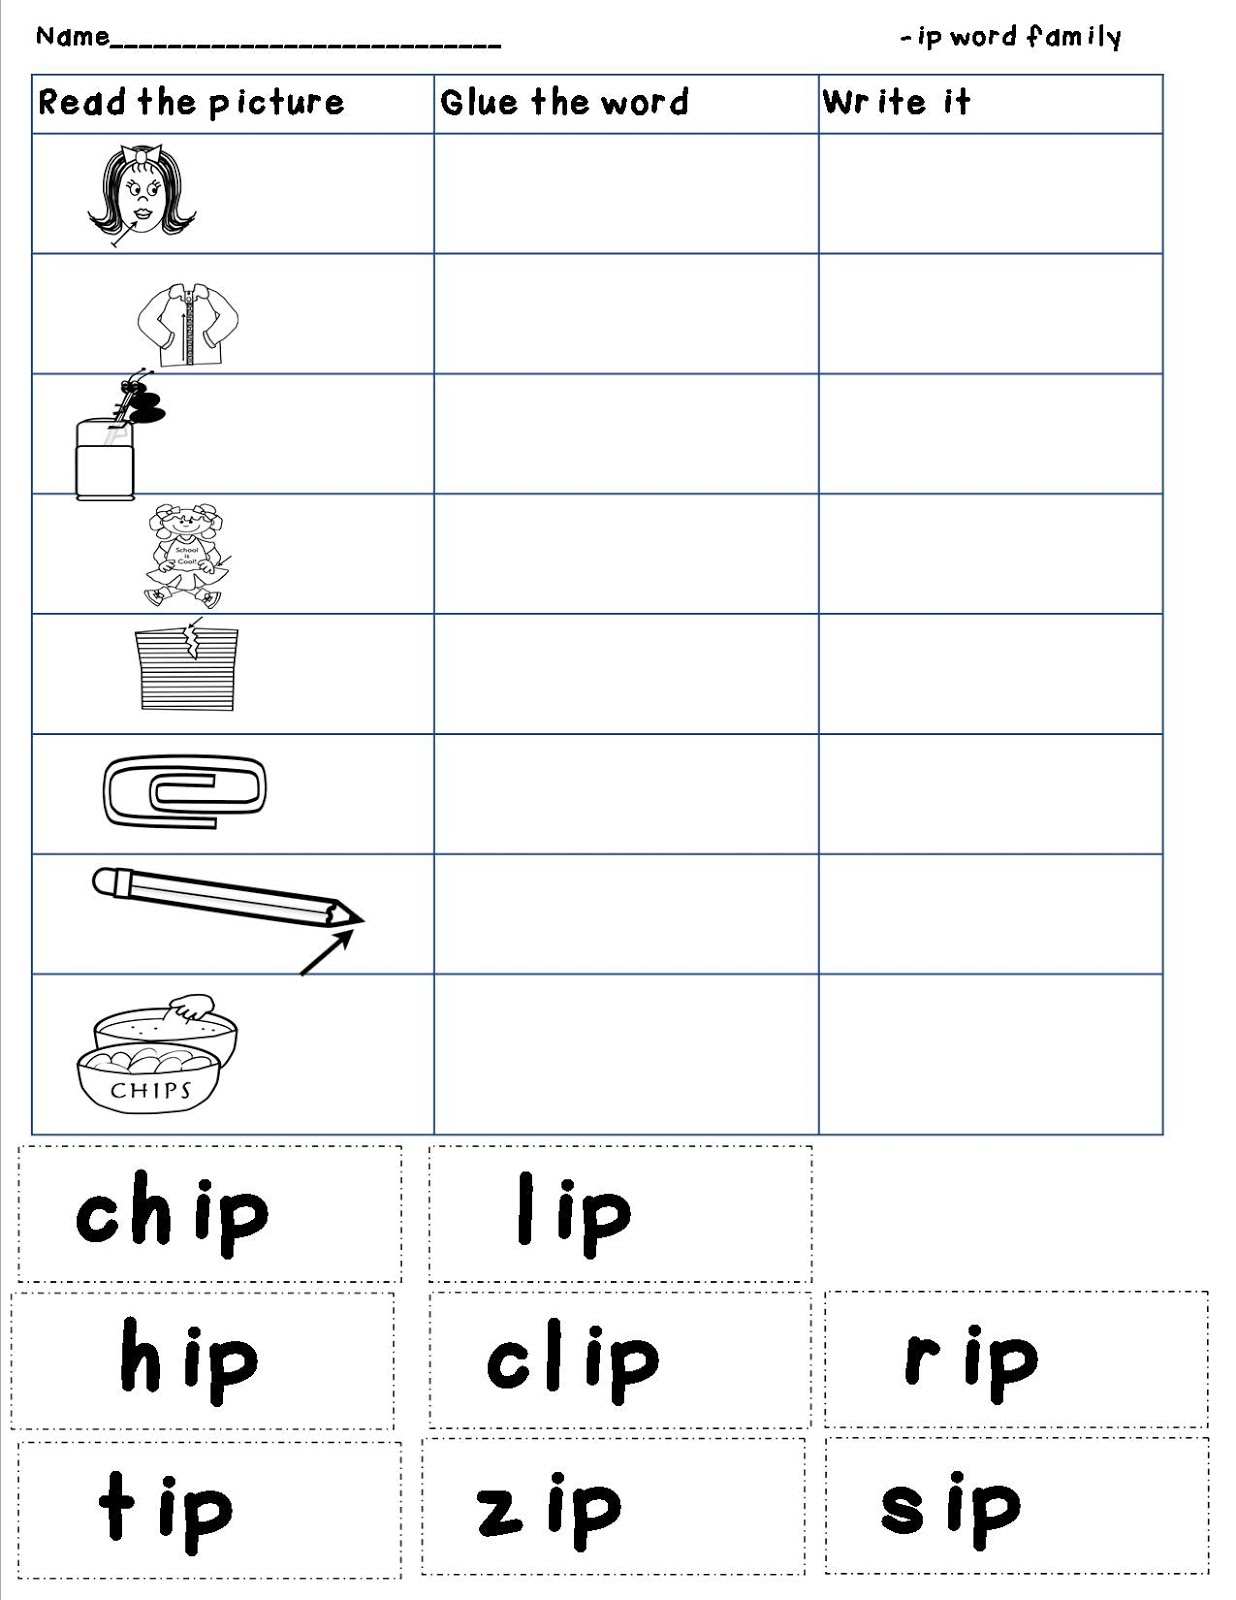 Ip Word Family Worksheets Free Worksheets Library – Word Family Worksheets for Kindergarten